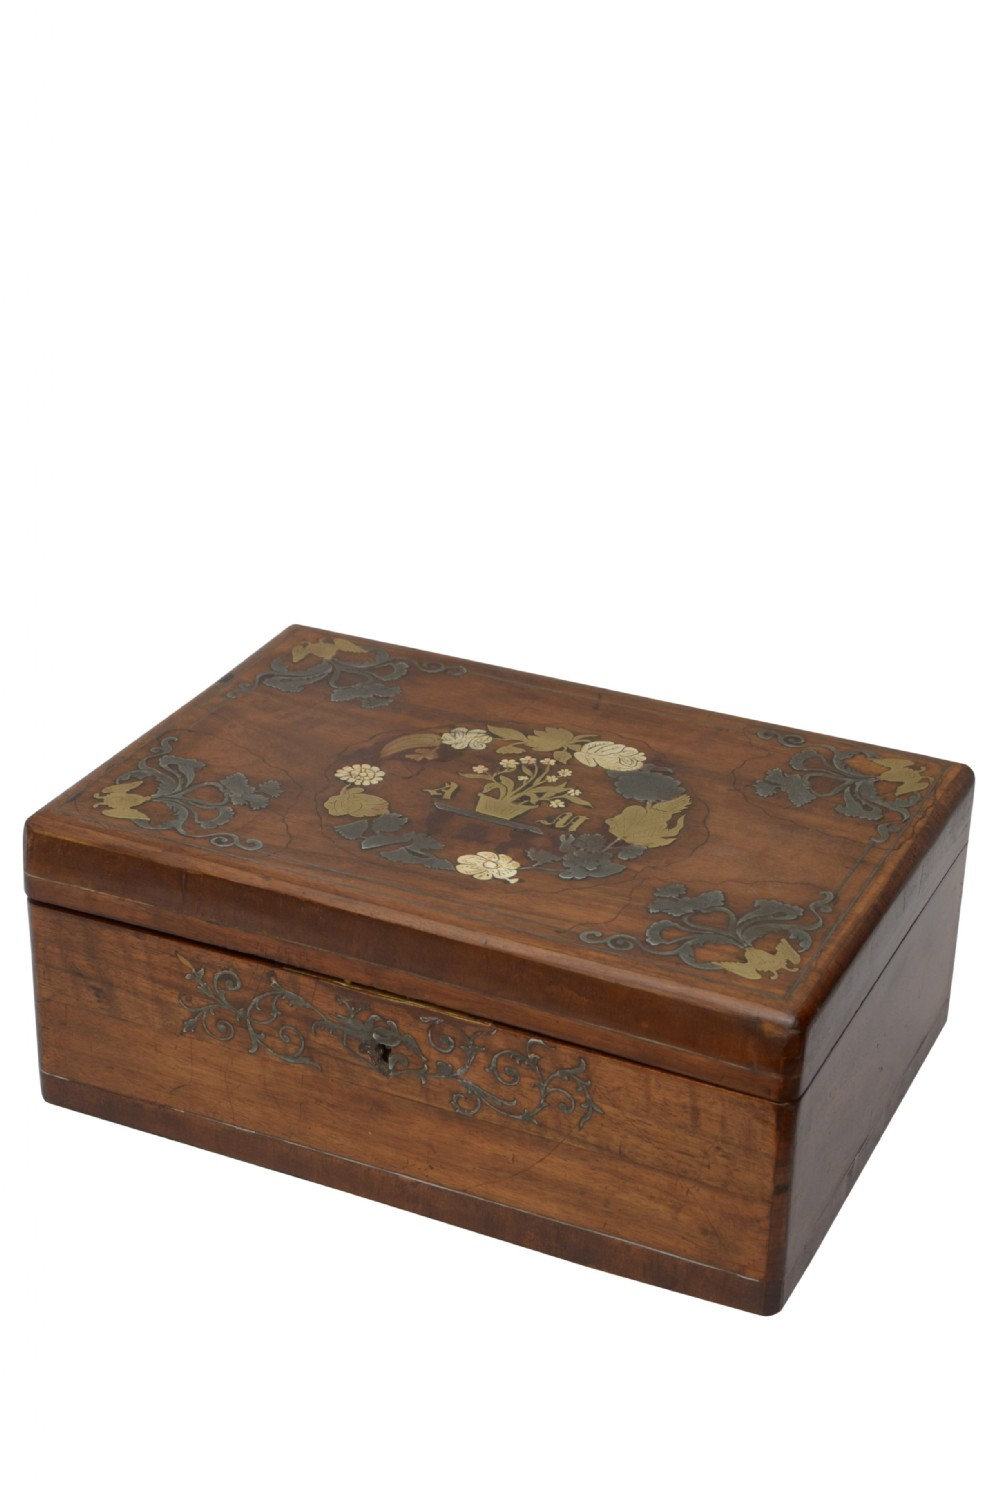 large victorian walnut and inlaid decorative box with a tray